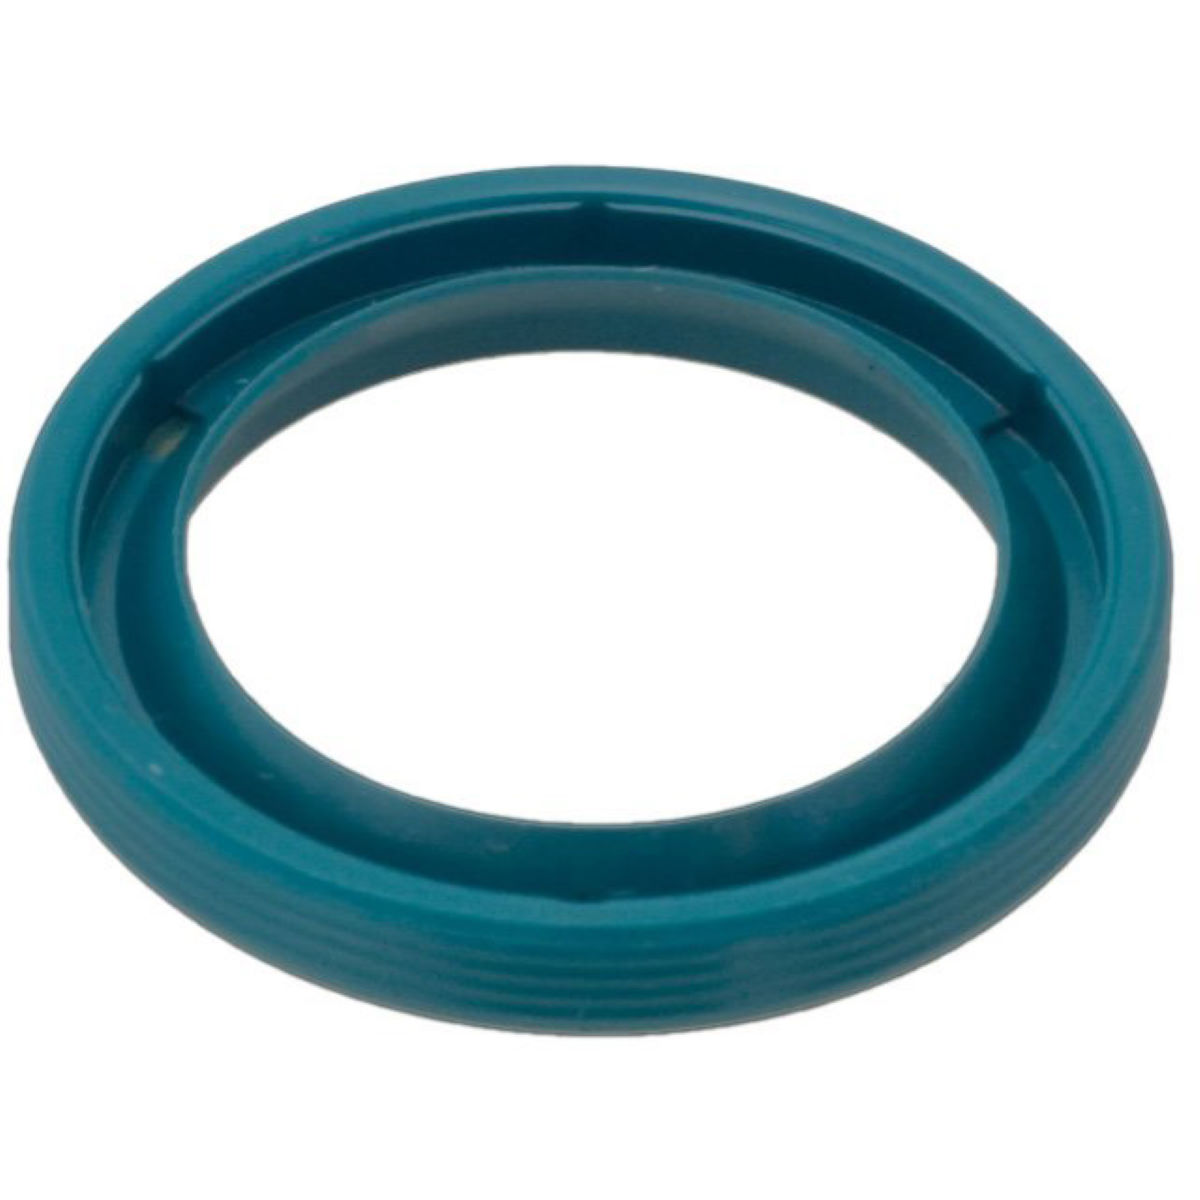 Hope Pro 2 Non Drive Side Seal - One Size Neutral  Wheel Hub Spares